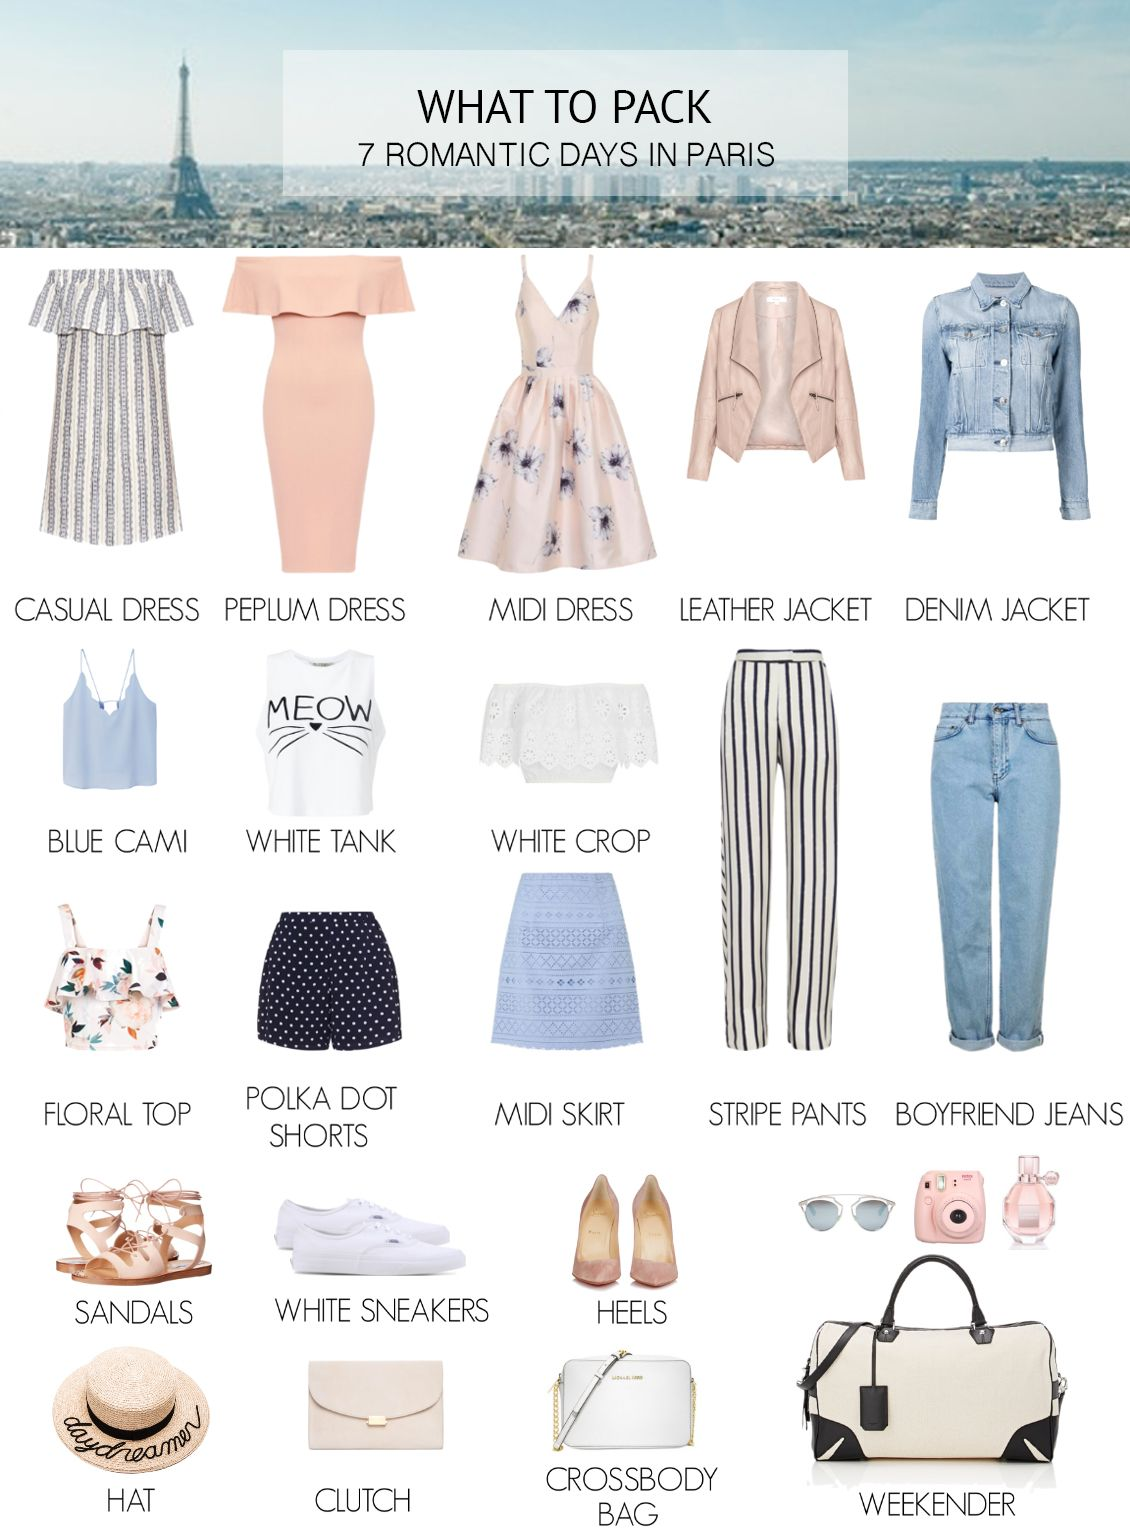 A travel capsule for a romantic week in Paris + outfits.